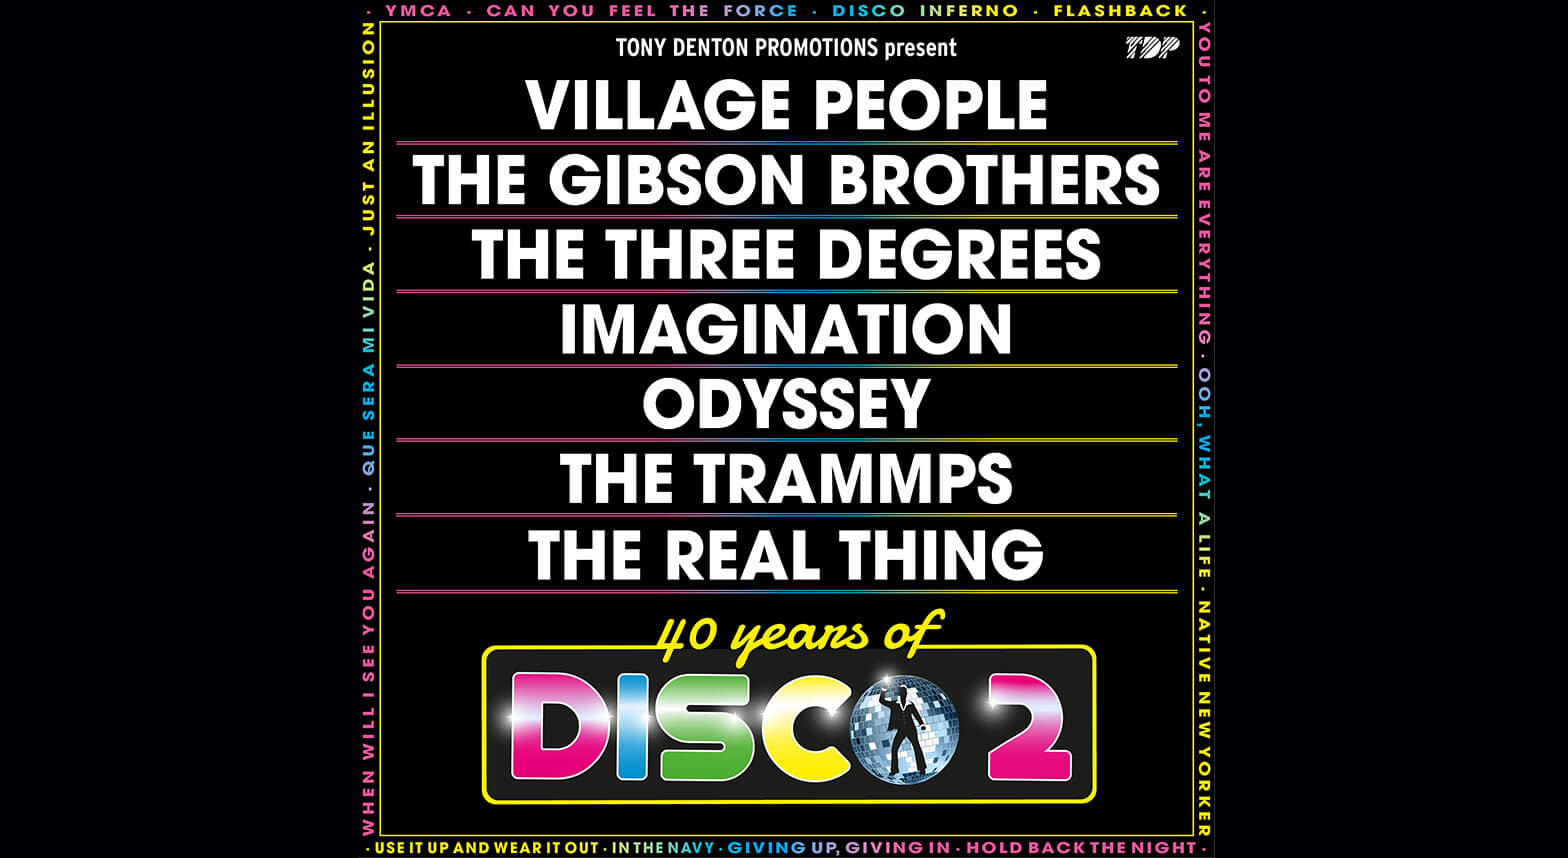 40-years-of-disco-2-arenasV2.jpg